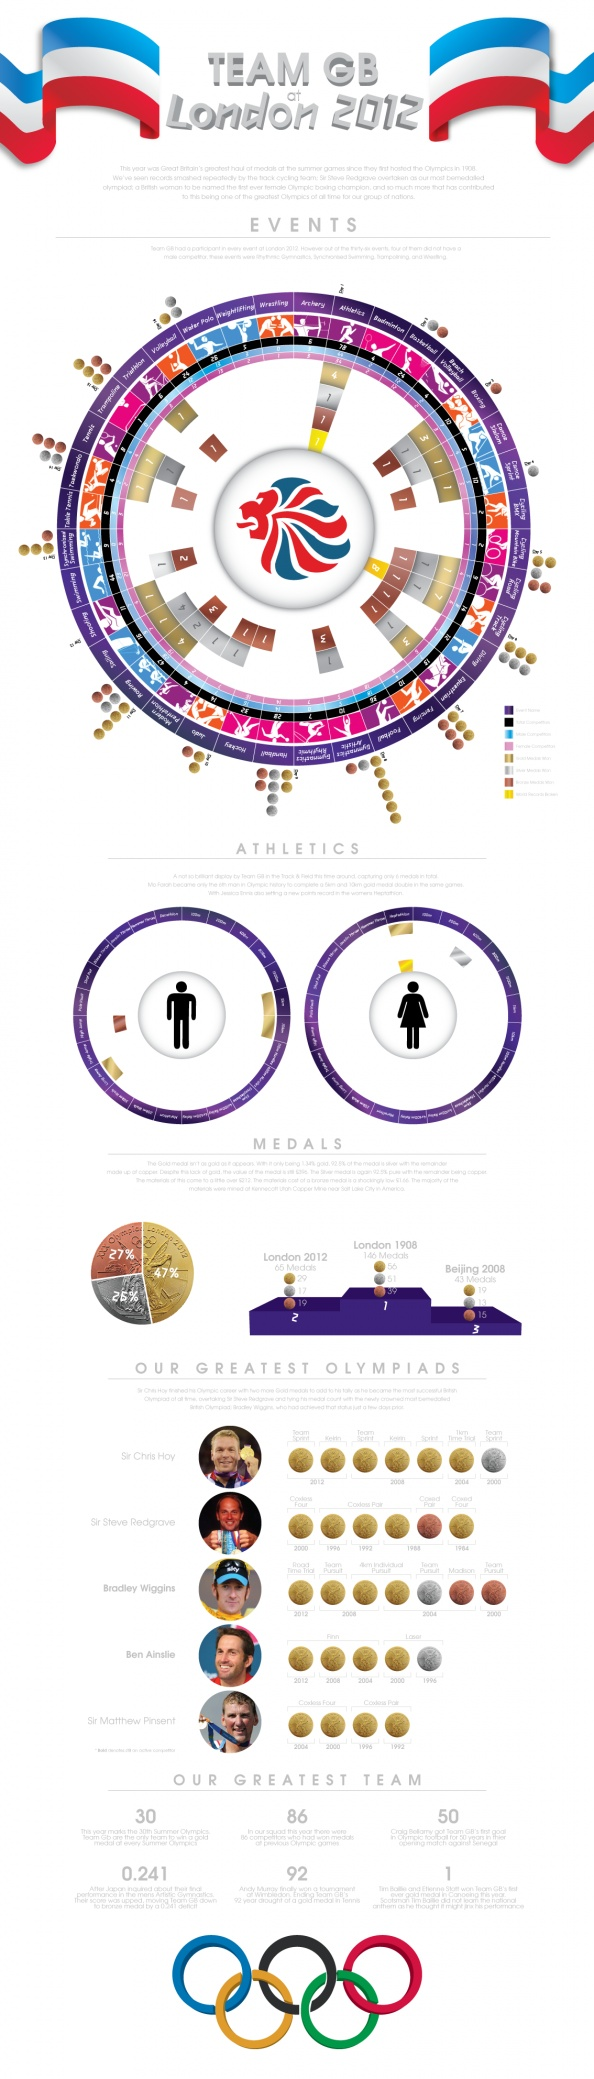 An Infographic that summarises Team GB's performance at London 2012